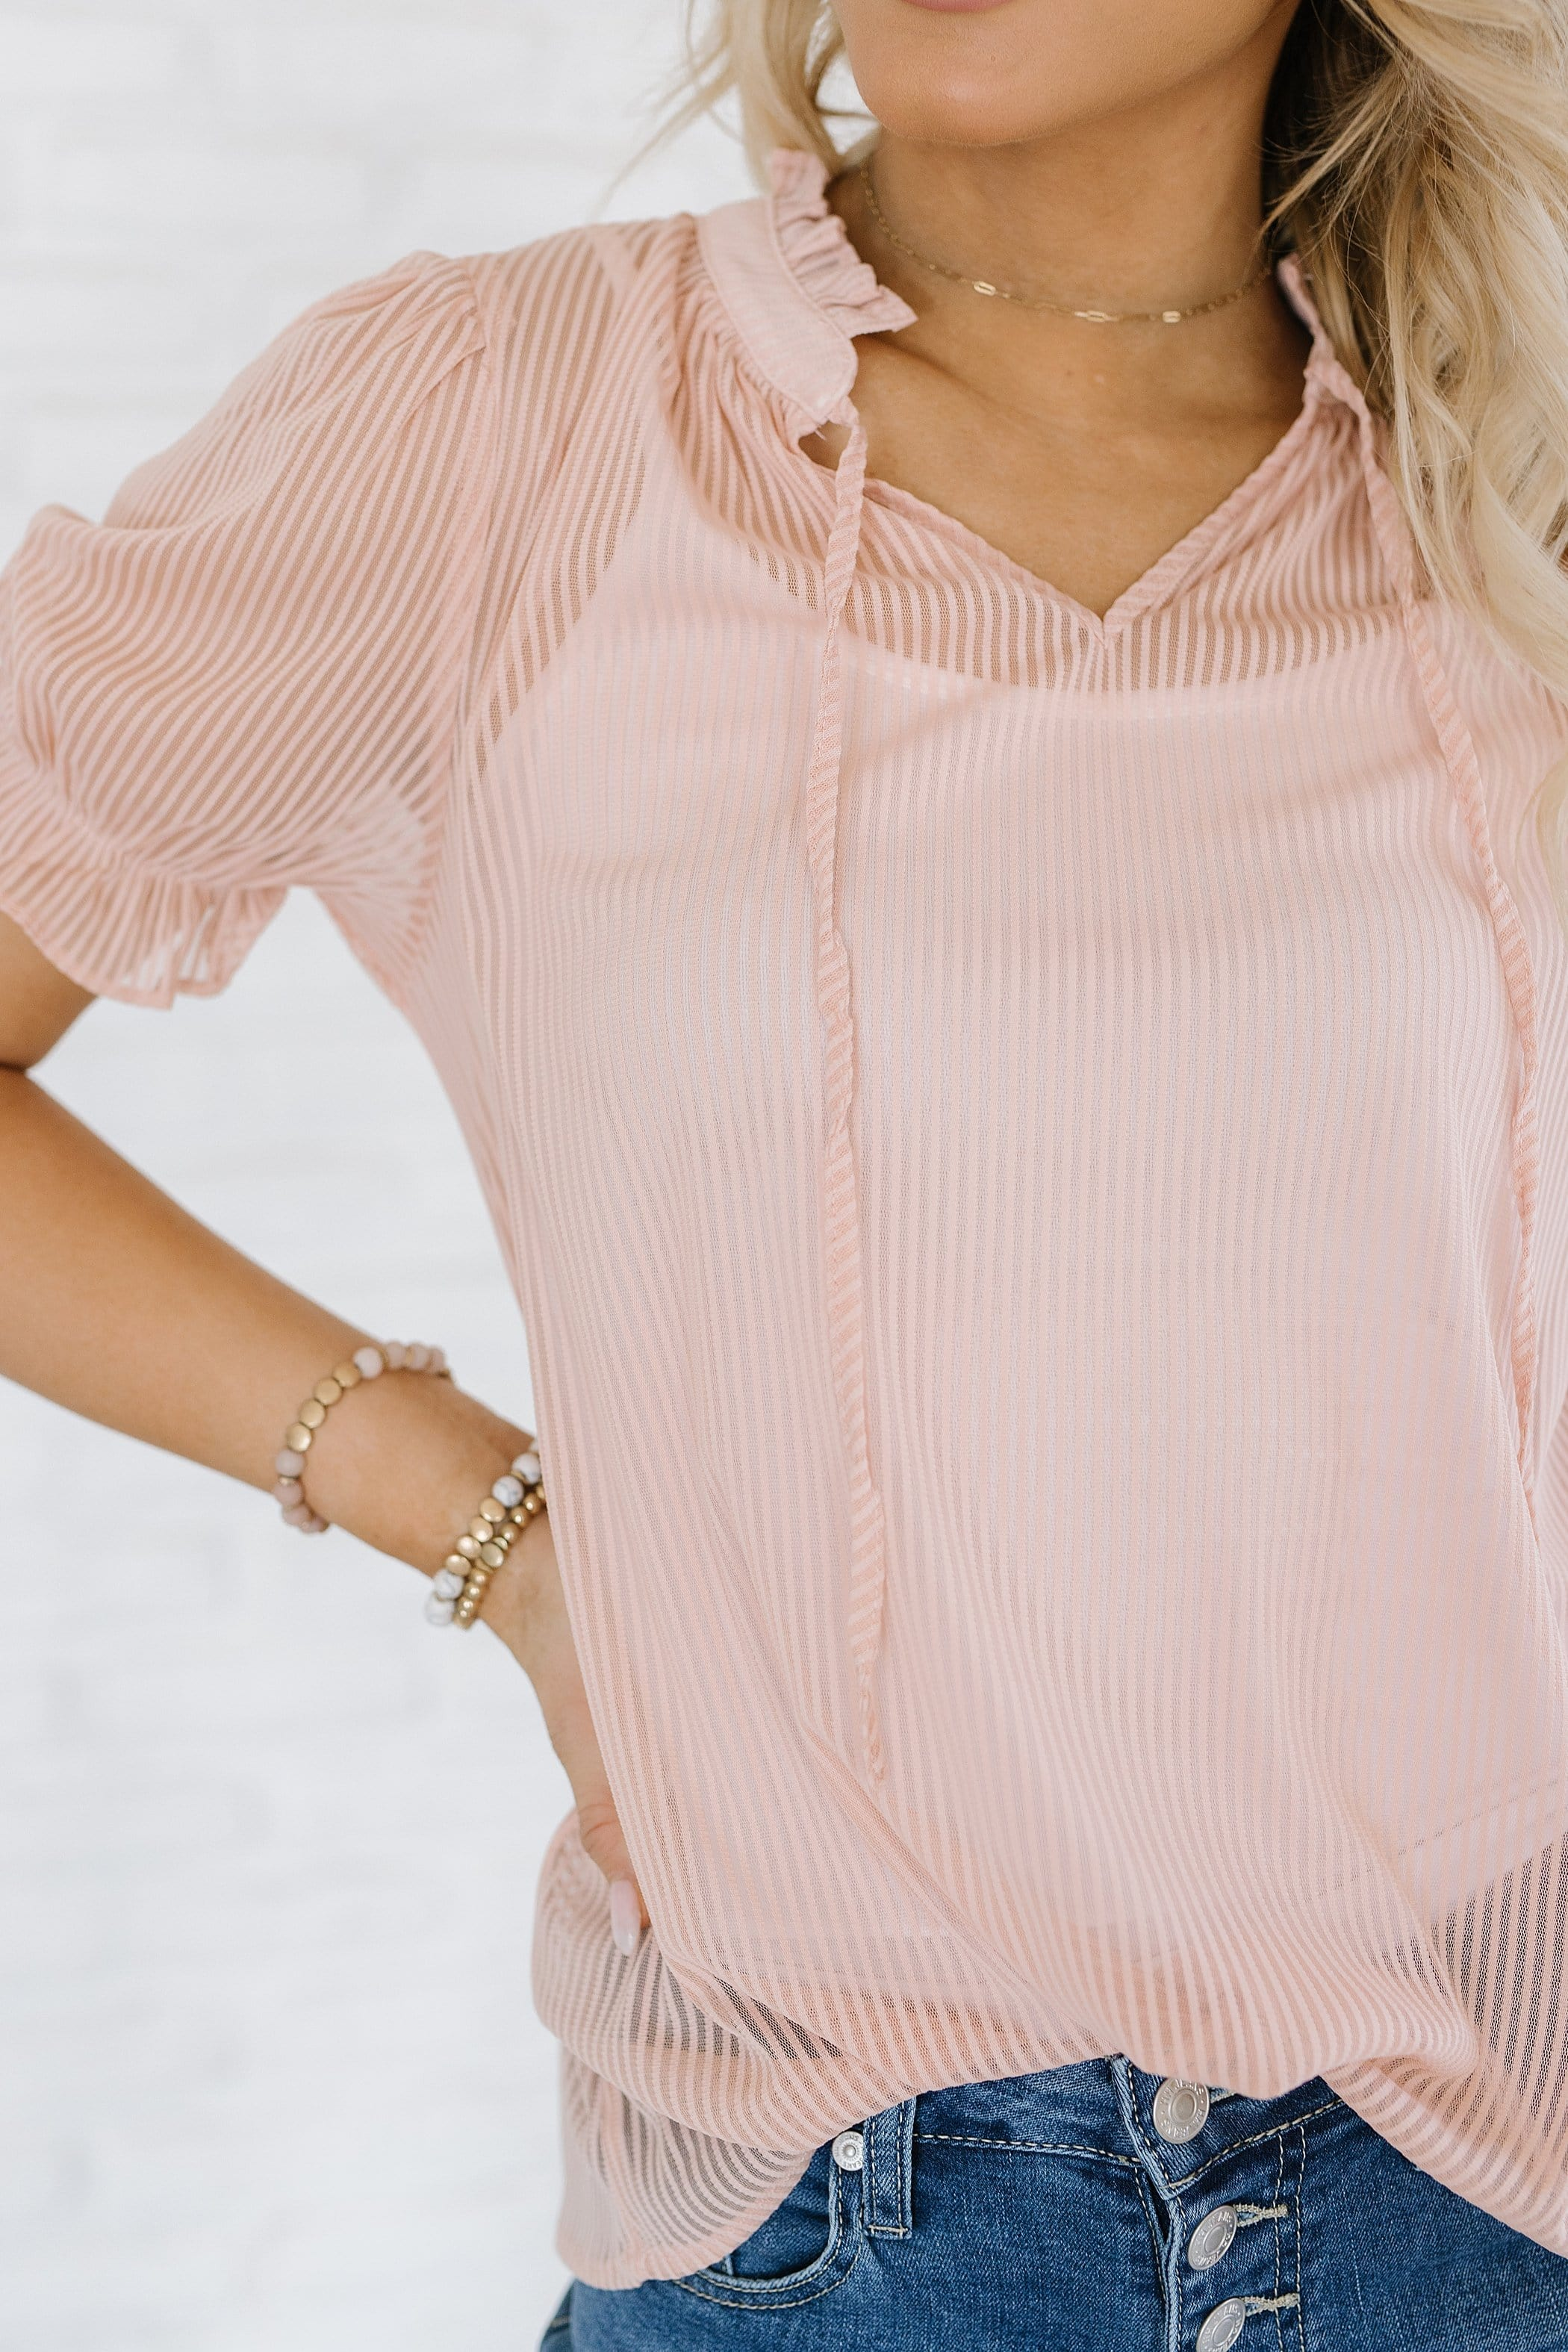 The Celeste Striped Top in Blush